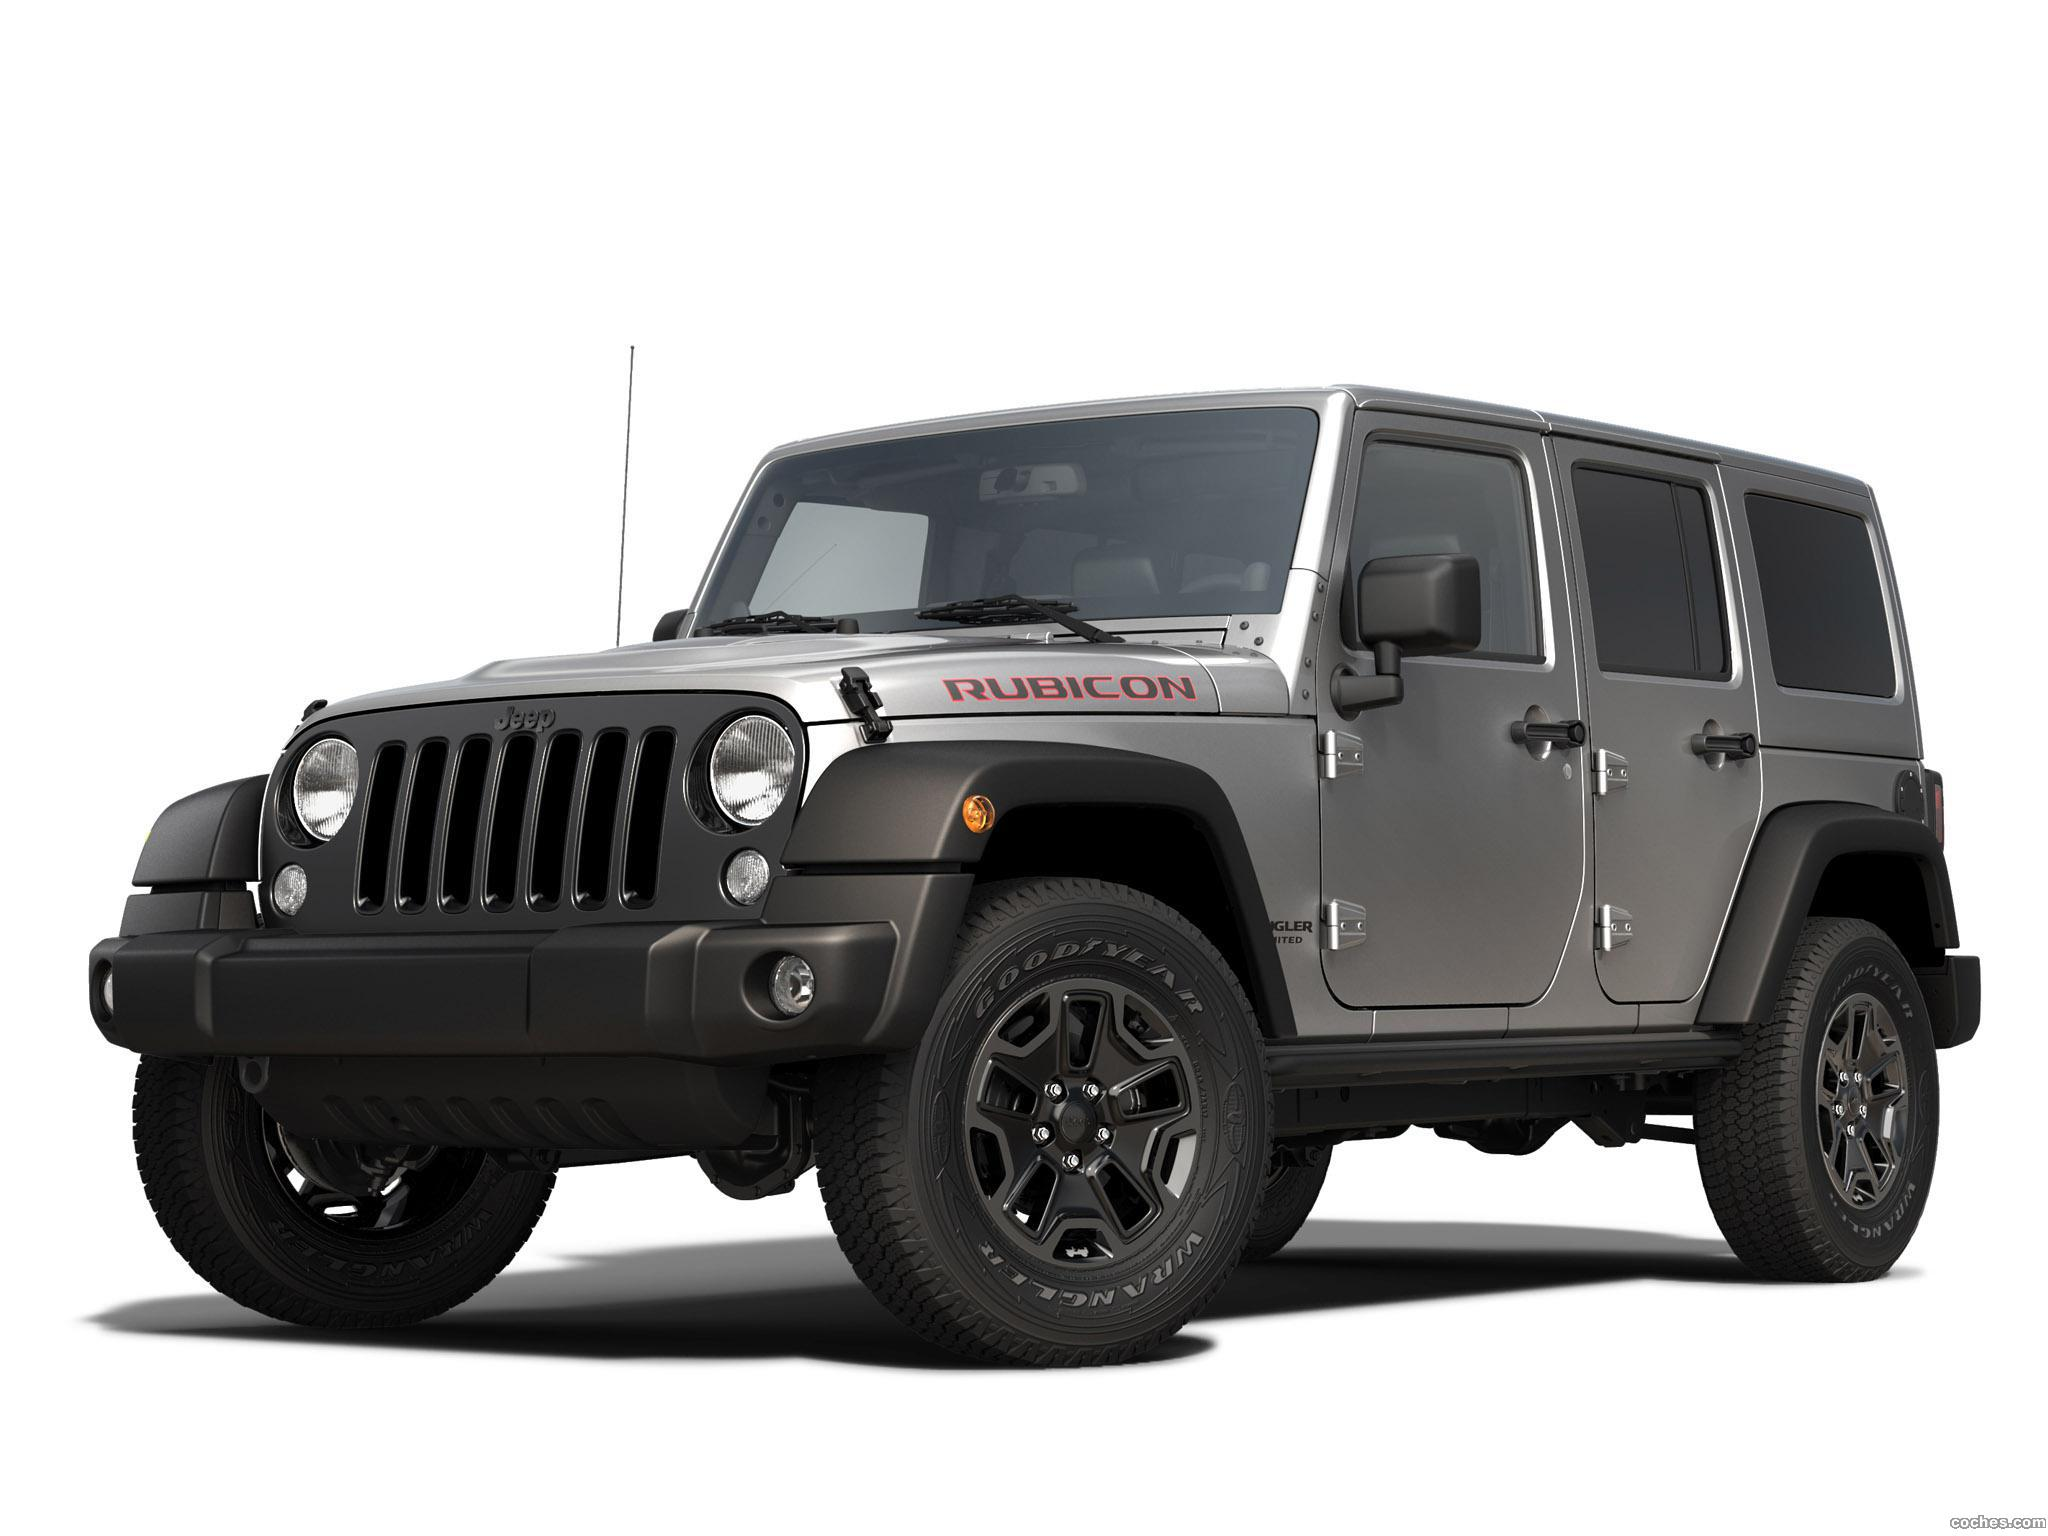 rubicon x package 2014 r2 Jeep Wrangler Unlimited Rubicon X Package